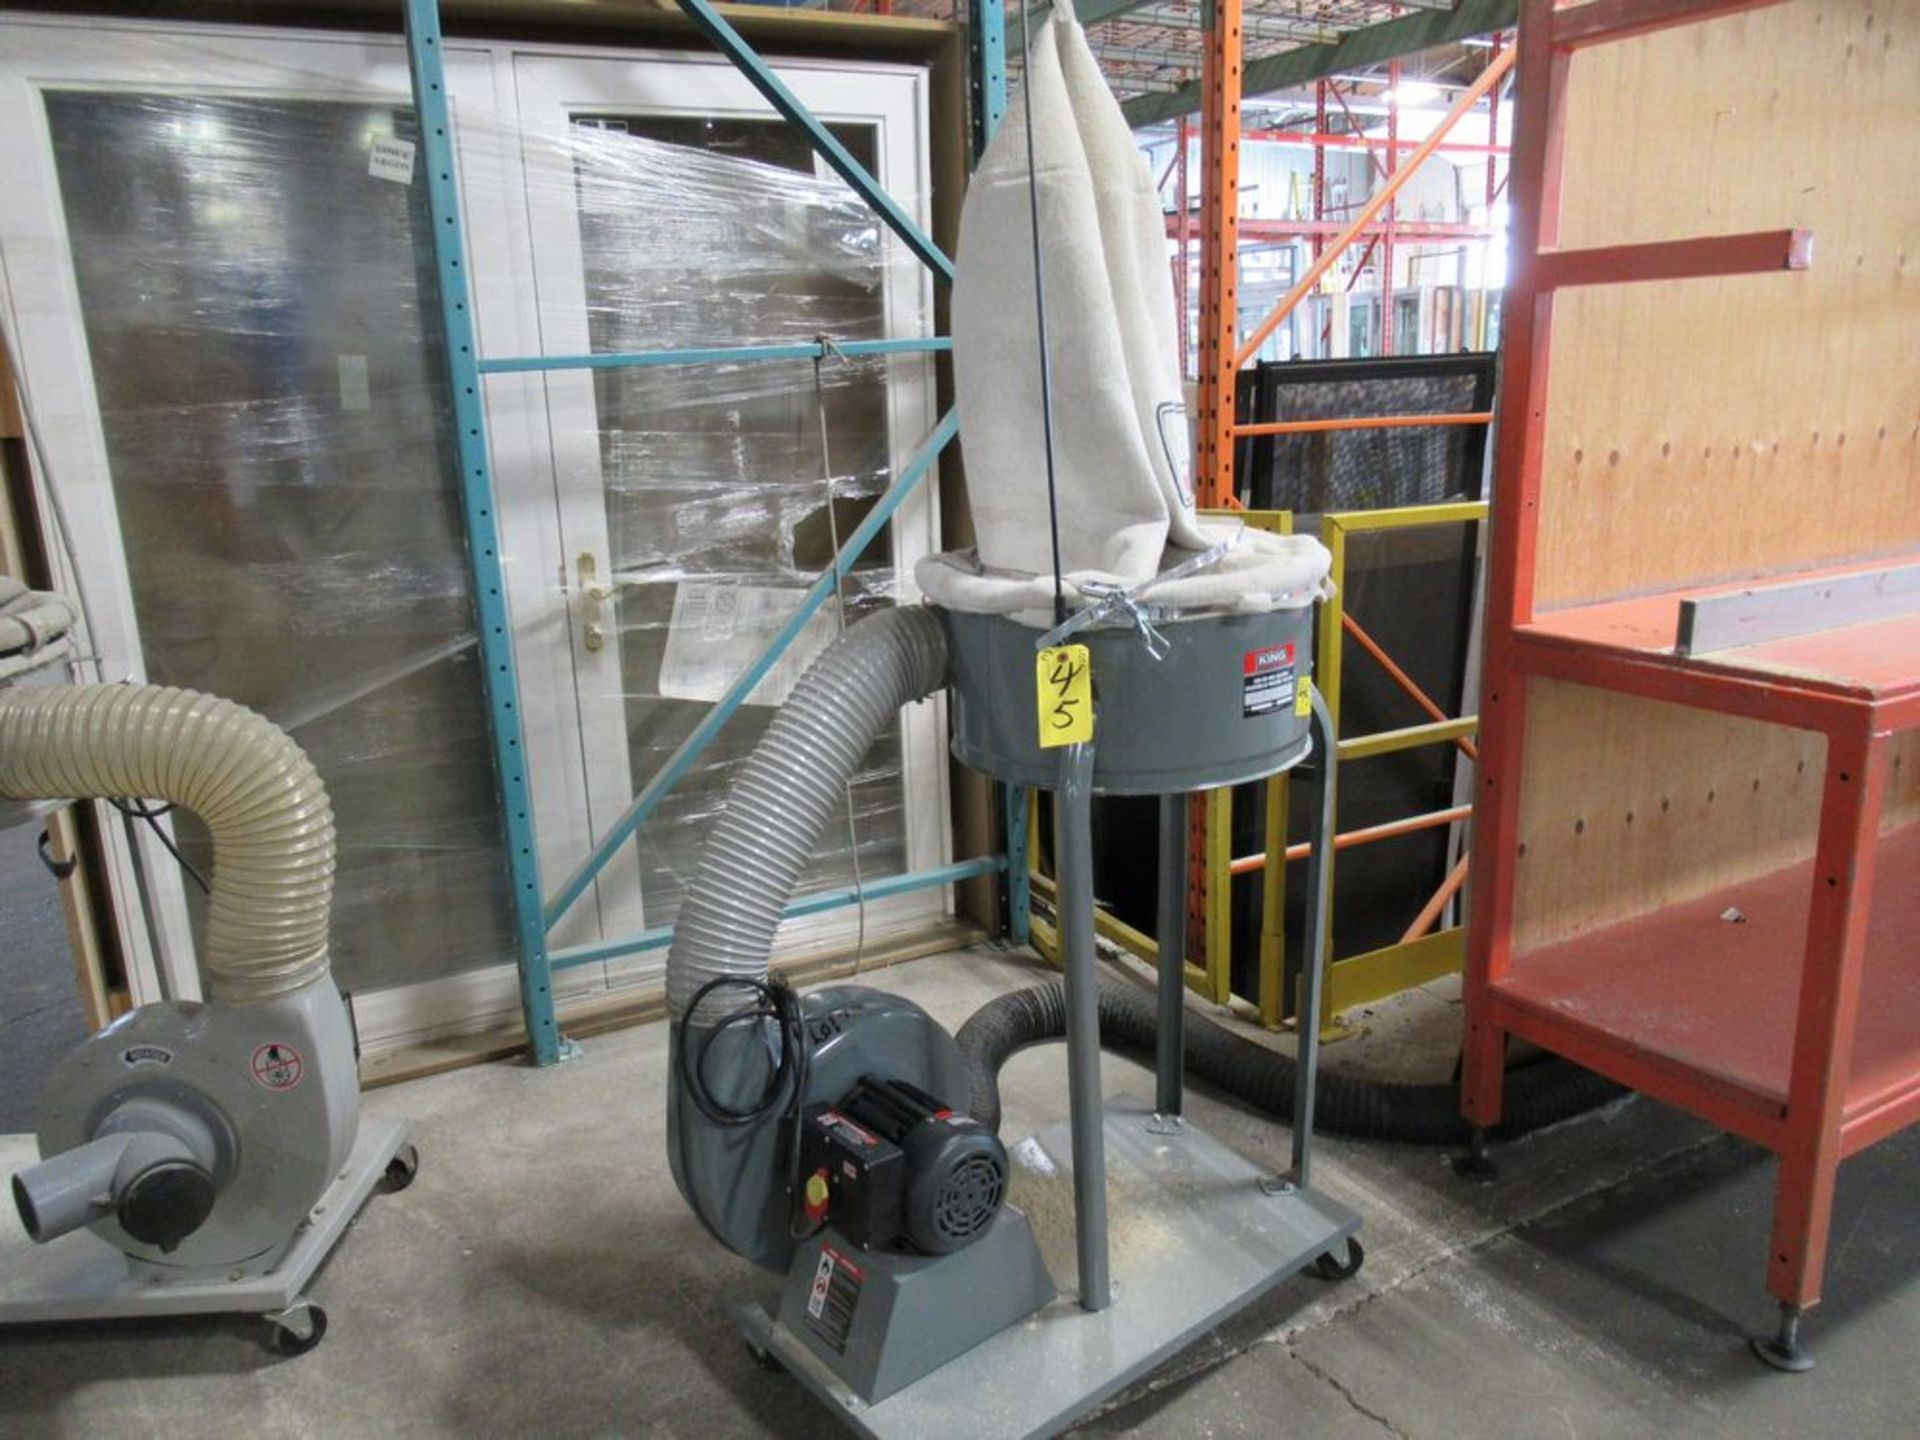 2017 KING INDUSTRIAL KC-3105C 1200 CFM 1.5HP APPROX. PORTABLE DUST COLLECTOR, S/N 17010100